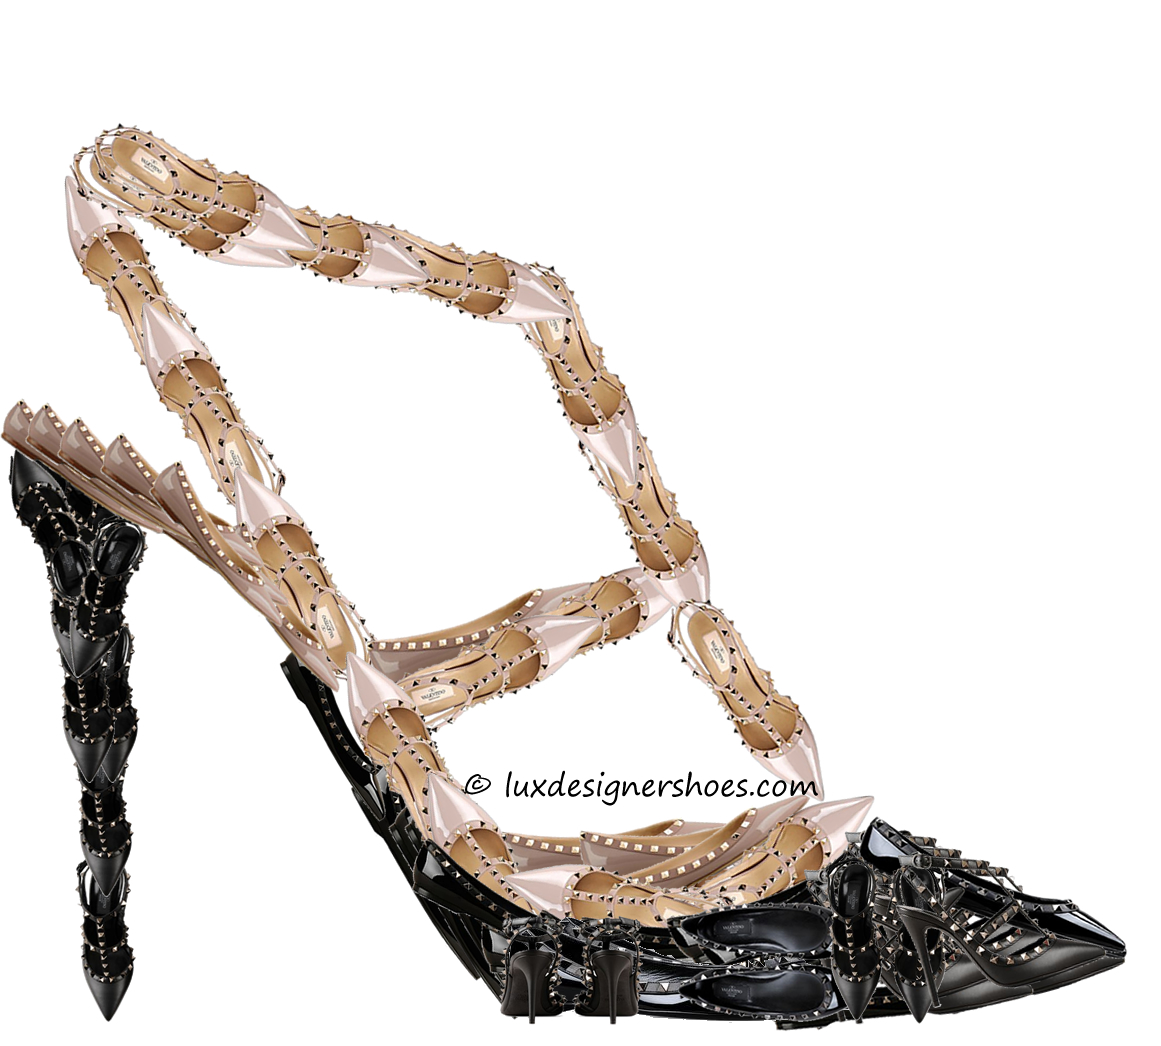 Valentino Shoes Review | Lux Designer Shoes